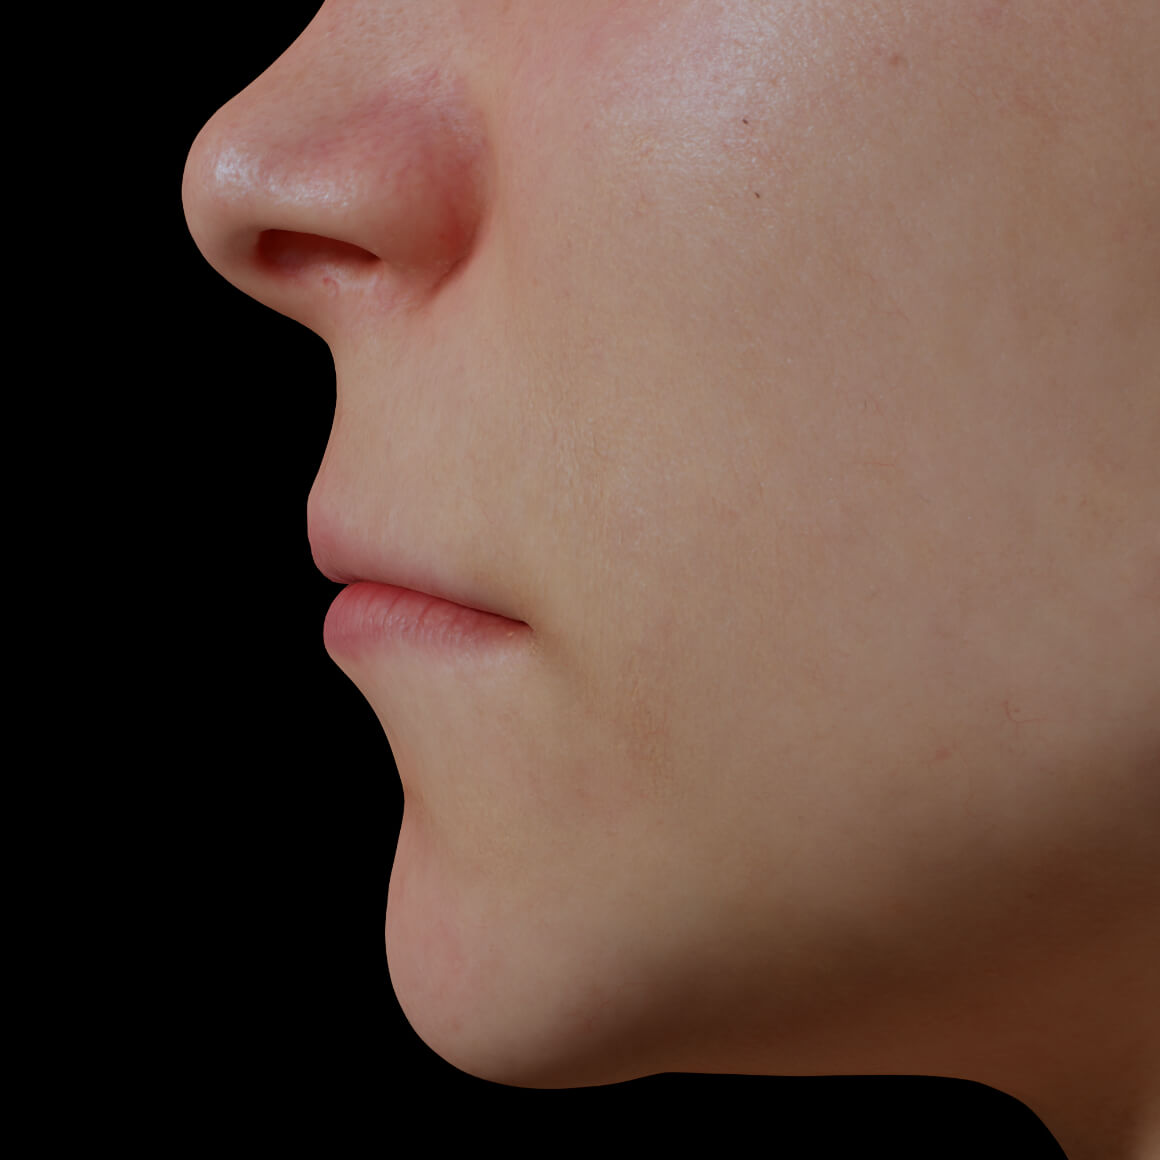 Female patient at Clinique Chloé positioned sideways showing thin, not very voluminous lips